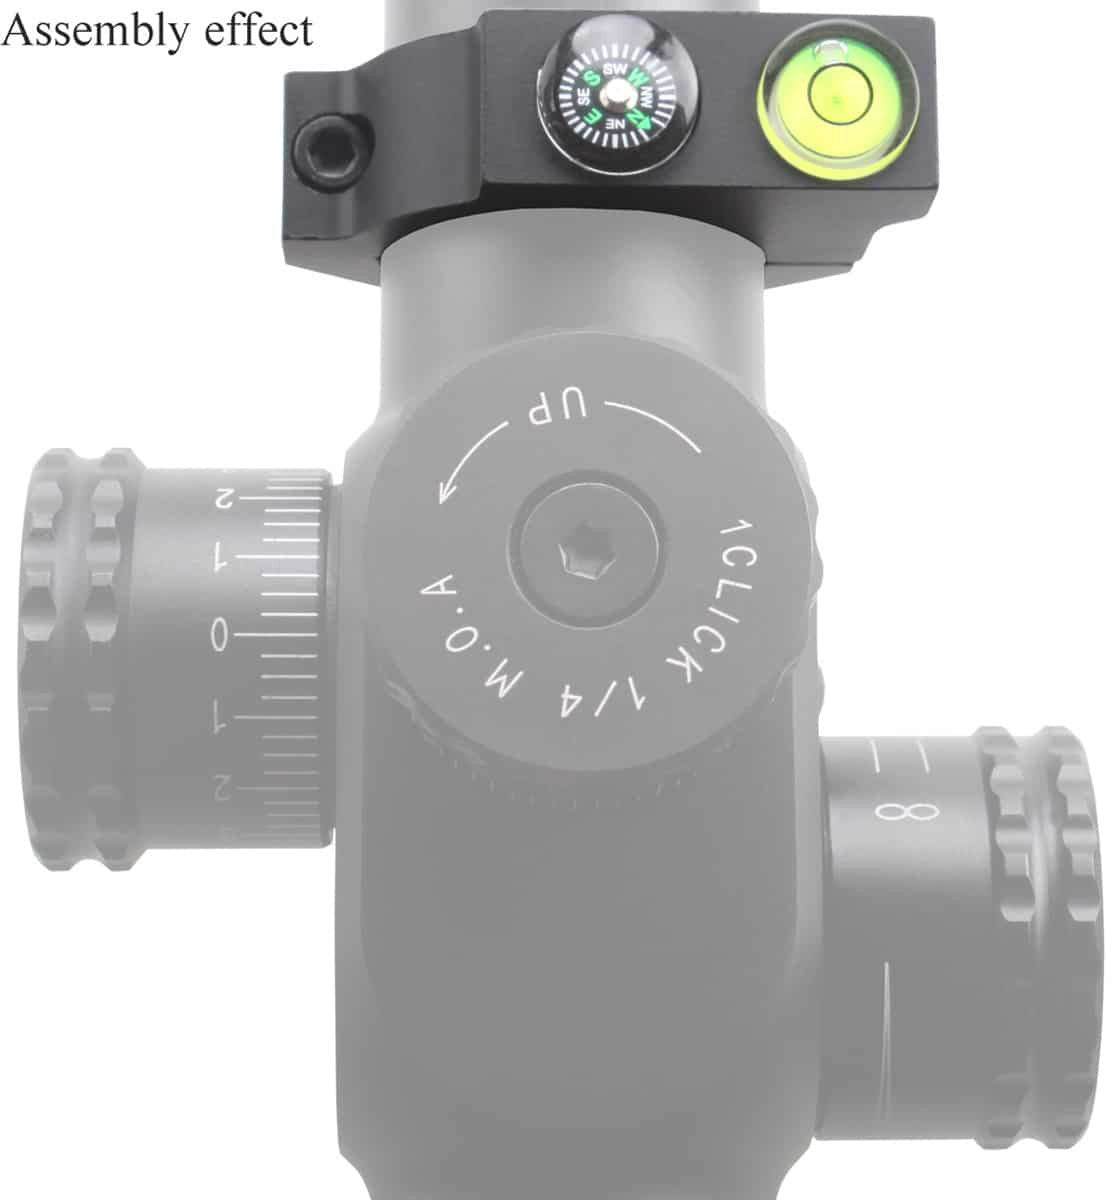 30mm Offest Bubble ACD Mount with Compass 4